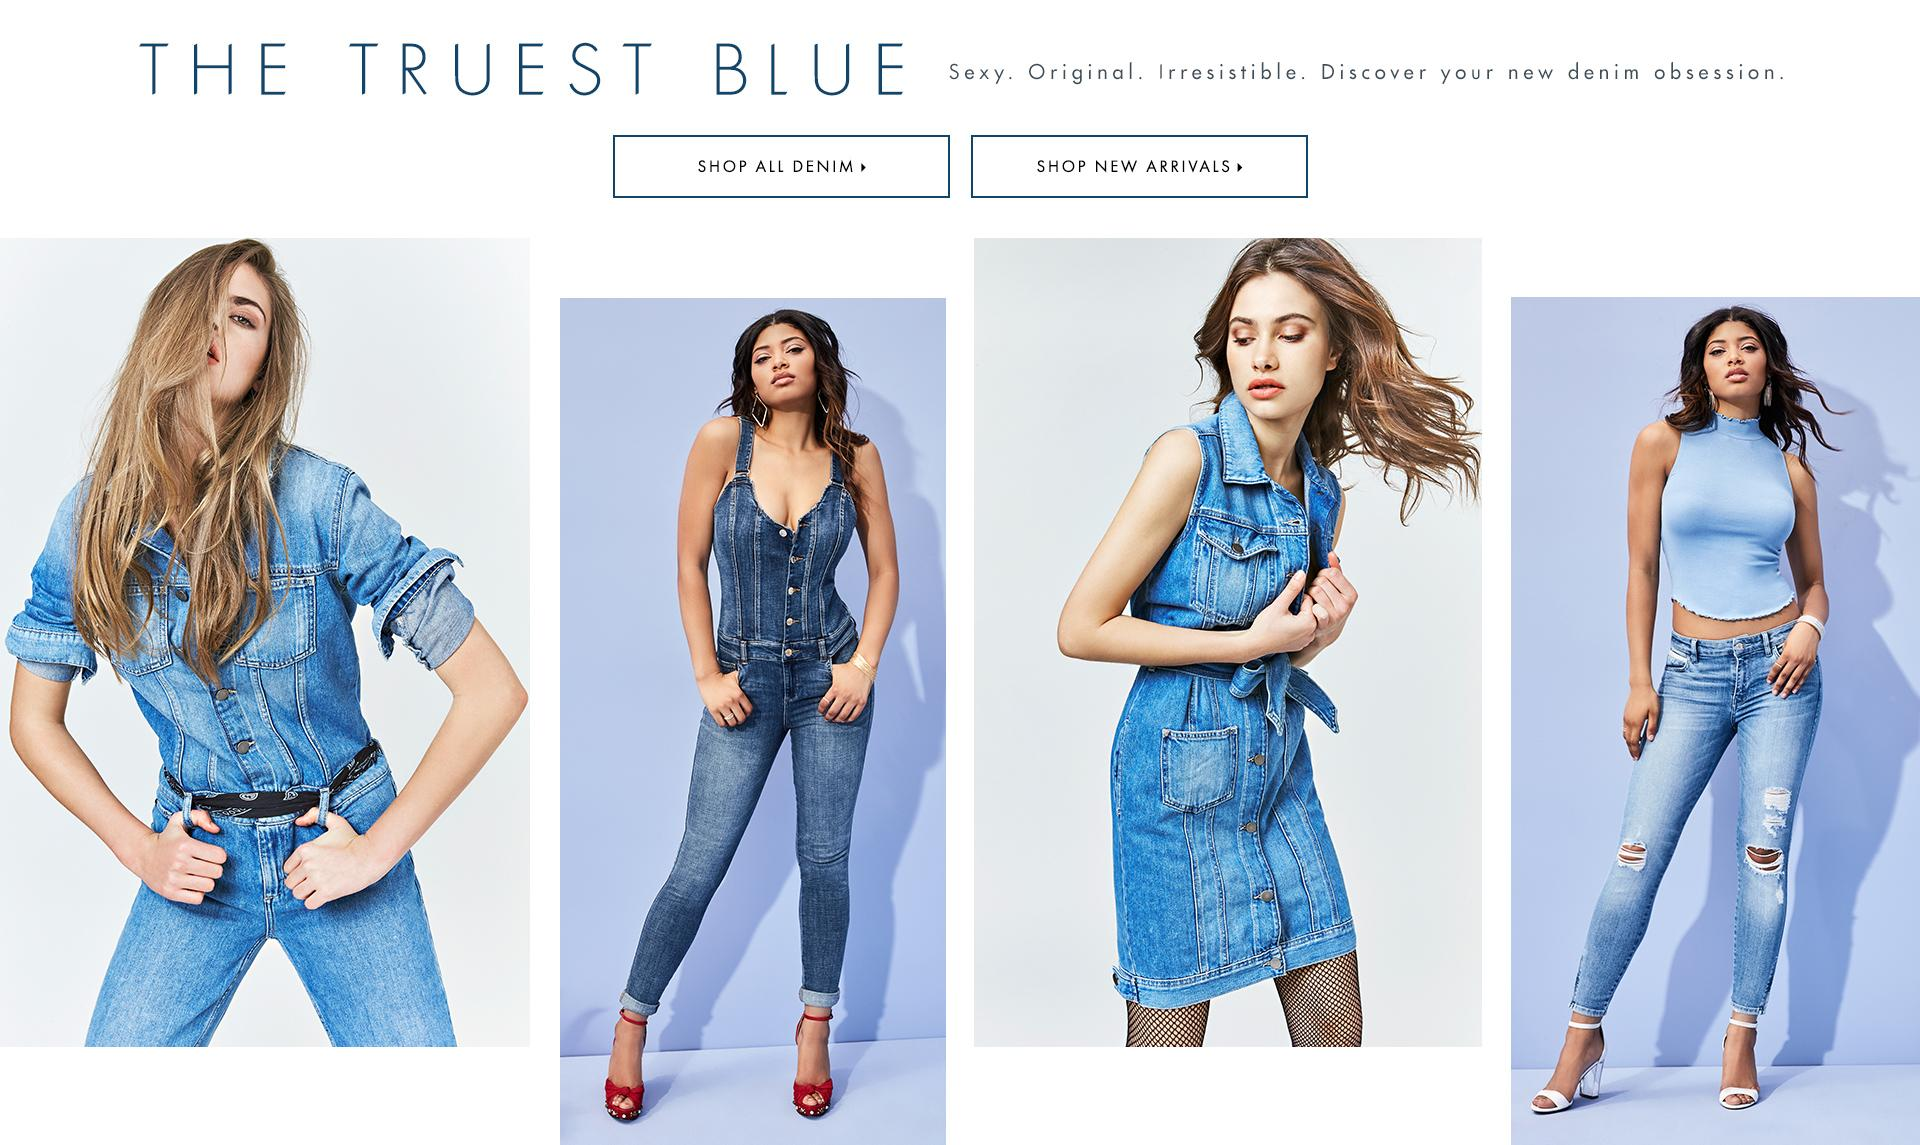 Discover your new denim obsession